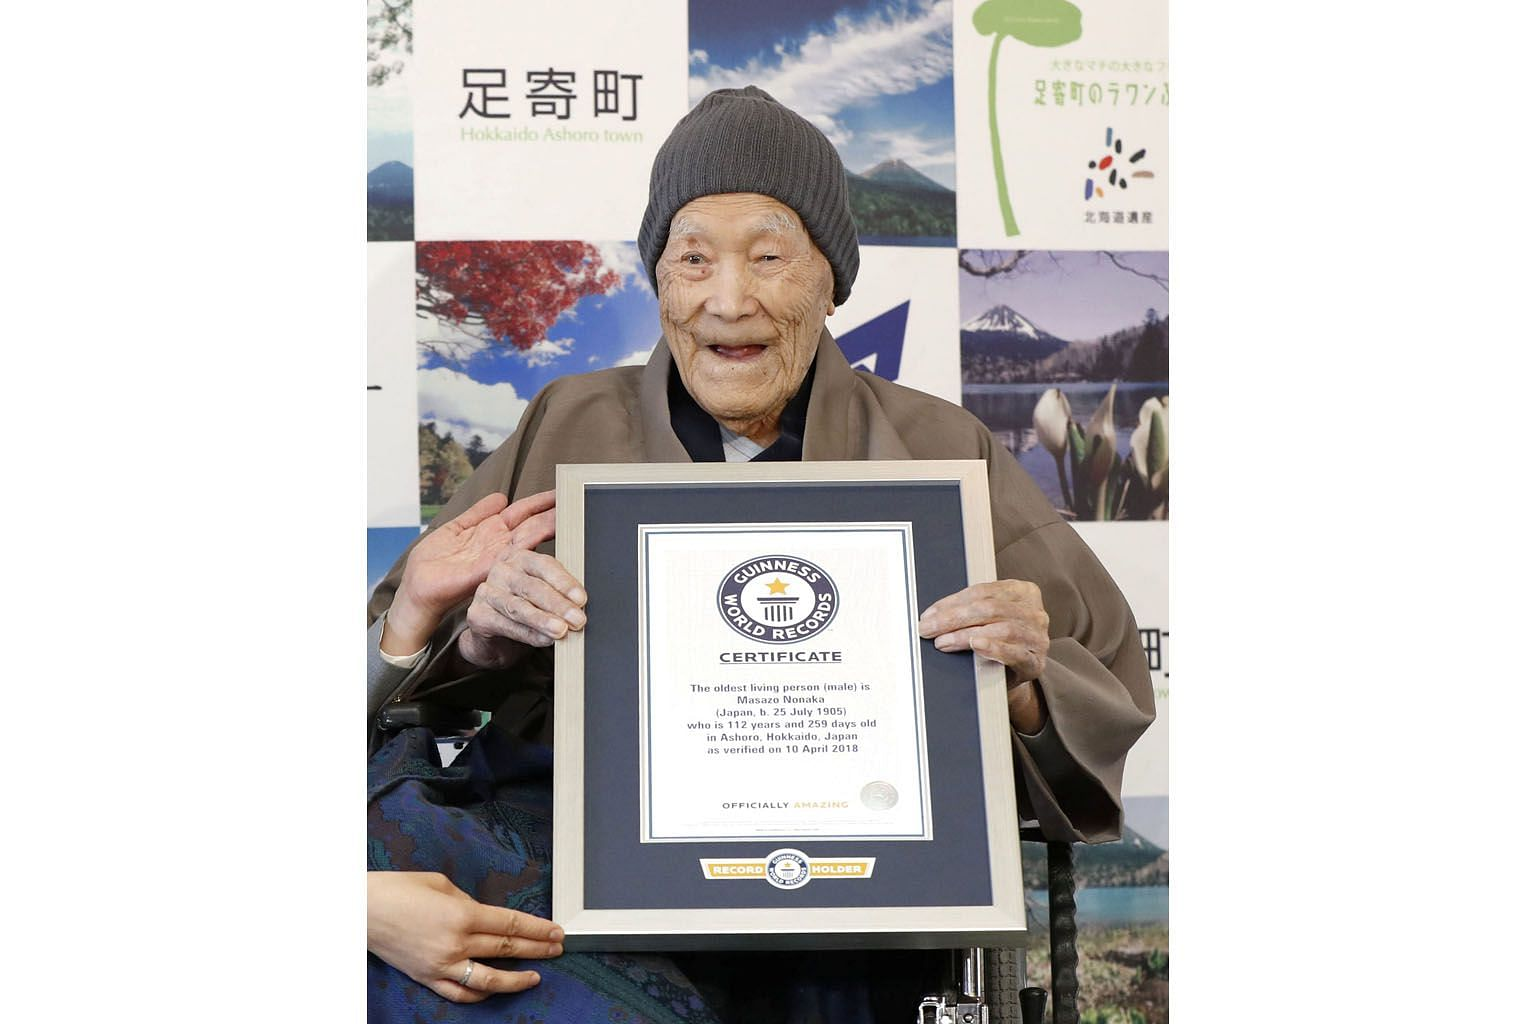 Japanese Masazo Nonaka, aged 112, with a Guinness World Records certificate naming him the world's oldest man on April 10. A study has found that among extremely old Italians, the death rate stops rising - the curve abruptly flattens into a plateau.